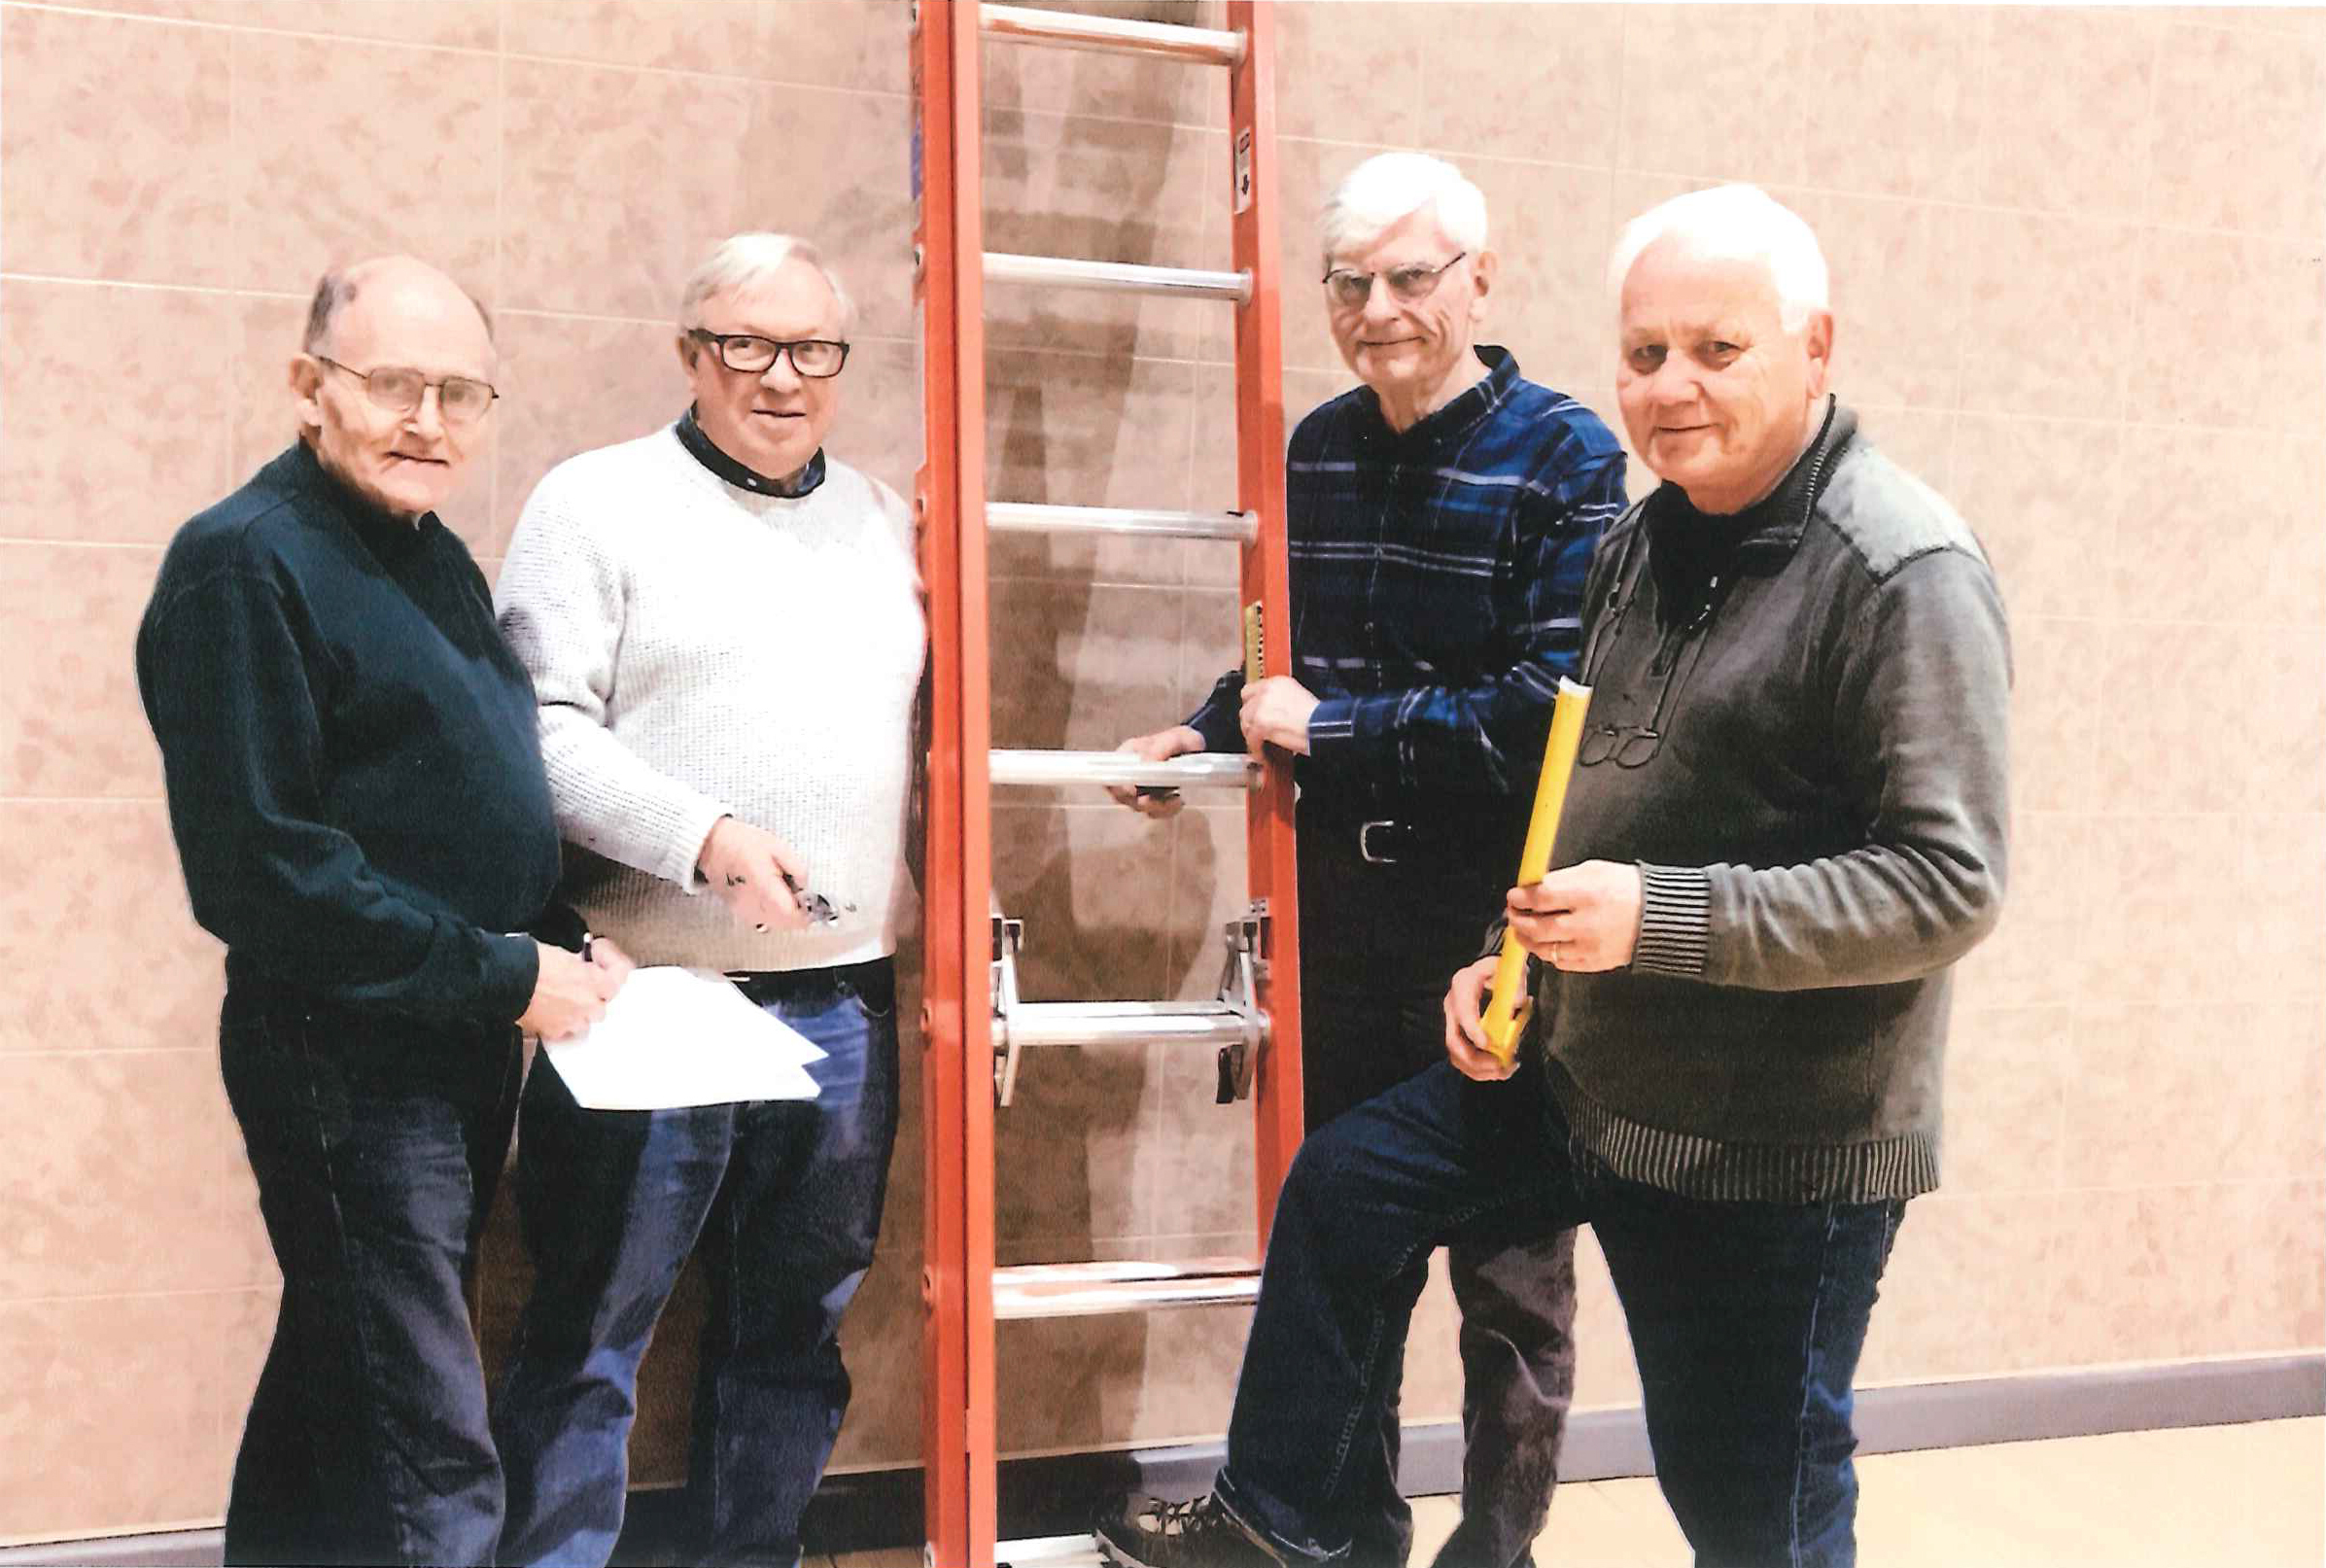 Members of Hopkins Area Men's Shed